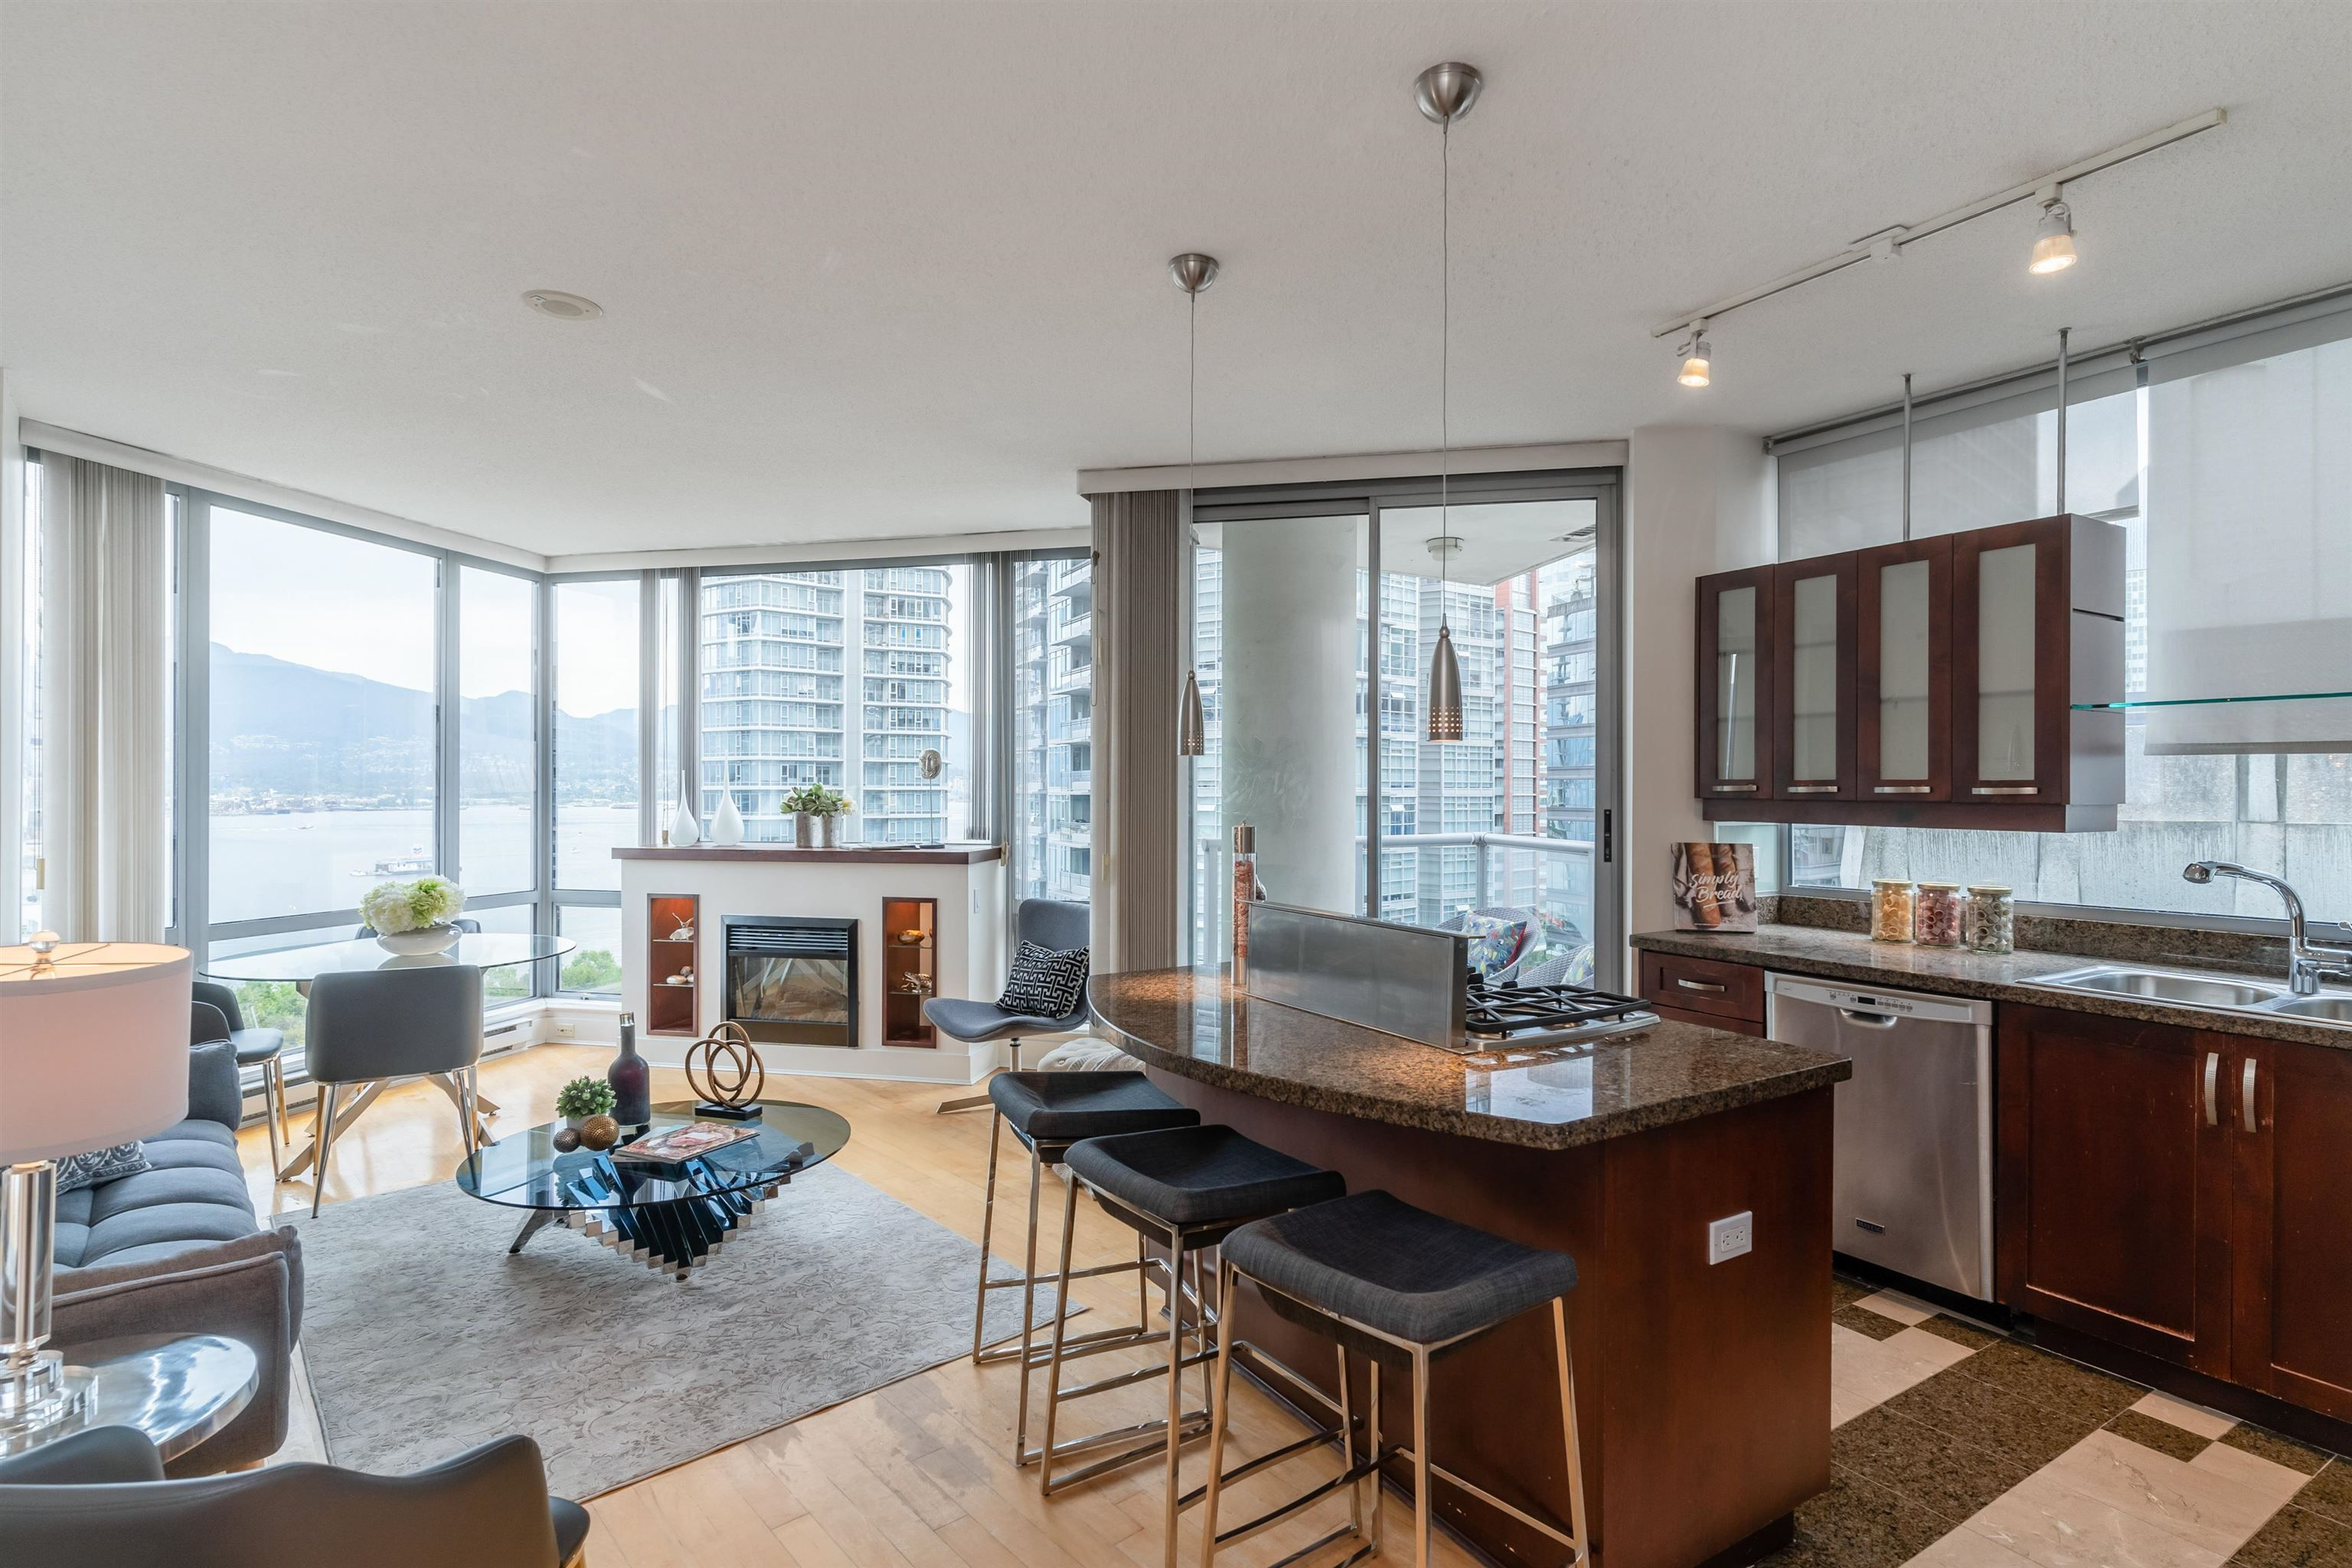 """Main Photo: 1101 1228 W HASTINGS Street in Vancouver: Coal Harbour Condo for sale in """"PALLADIO"""" (Vancouver West)  : MLS®# R2616031"""